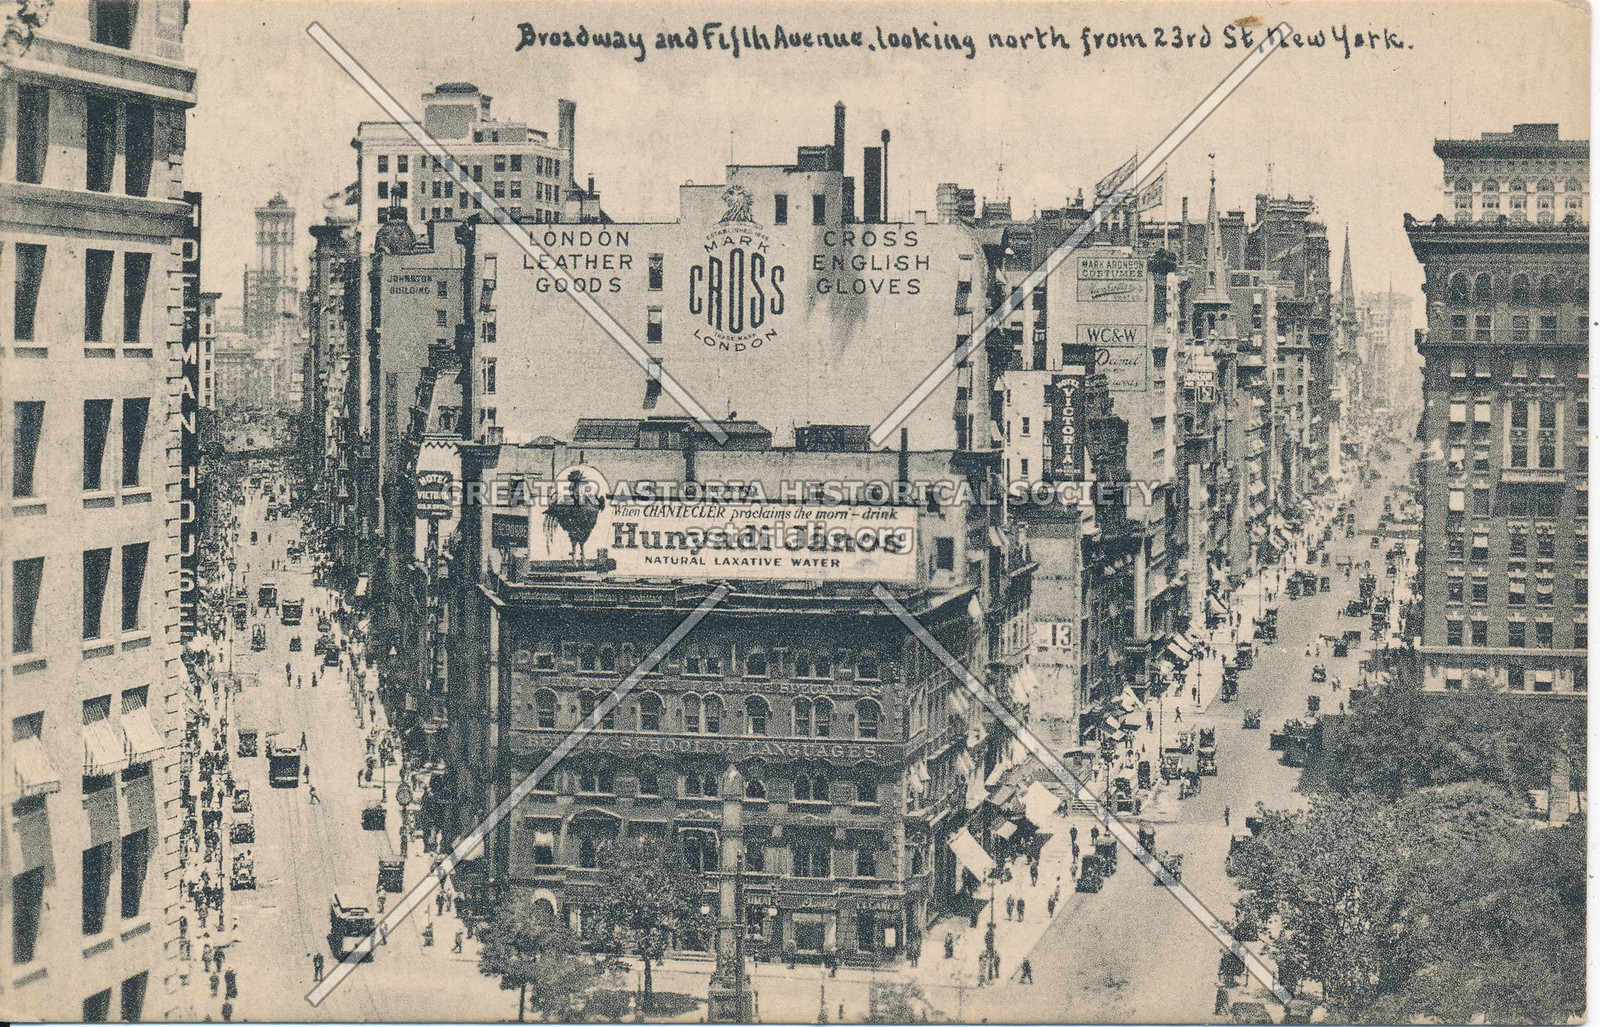 Broadway & Fifth Ave., looking North from 23rd St, N.Y.